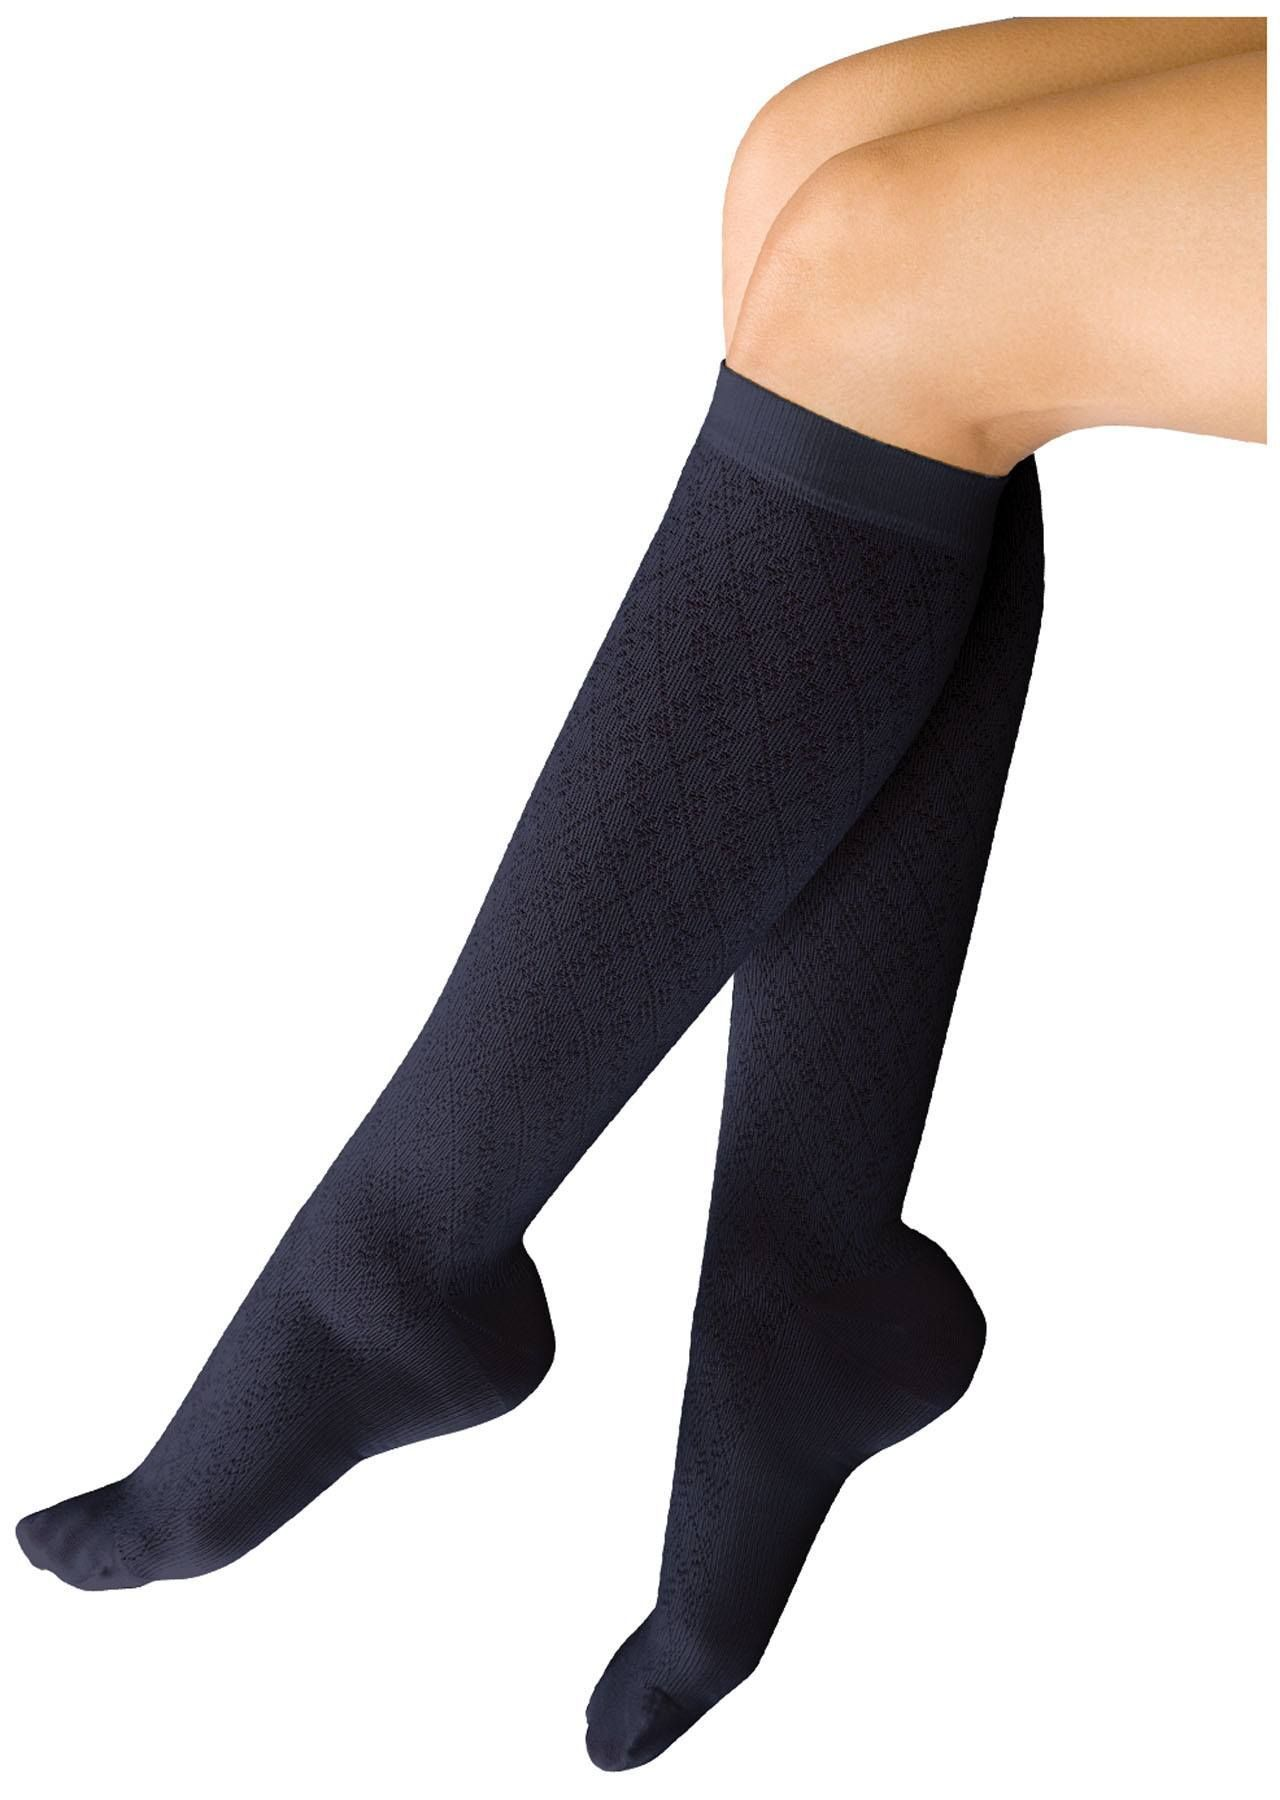 10-15 Mmhg Support Trouser Sock - Diamond Navy